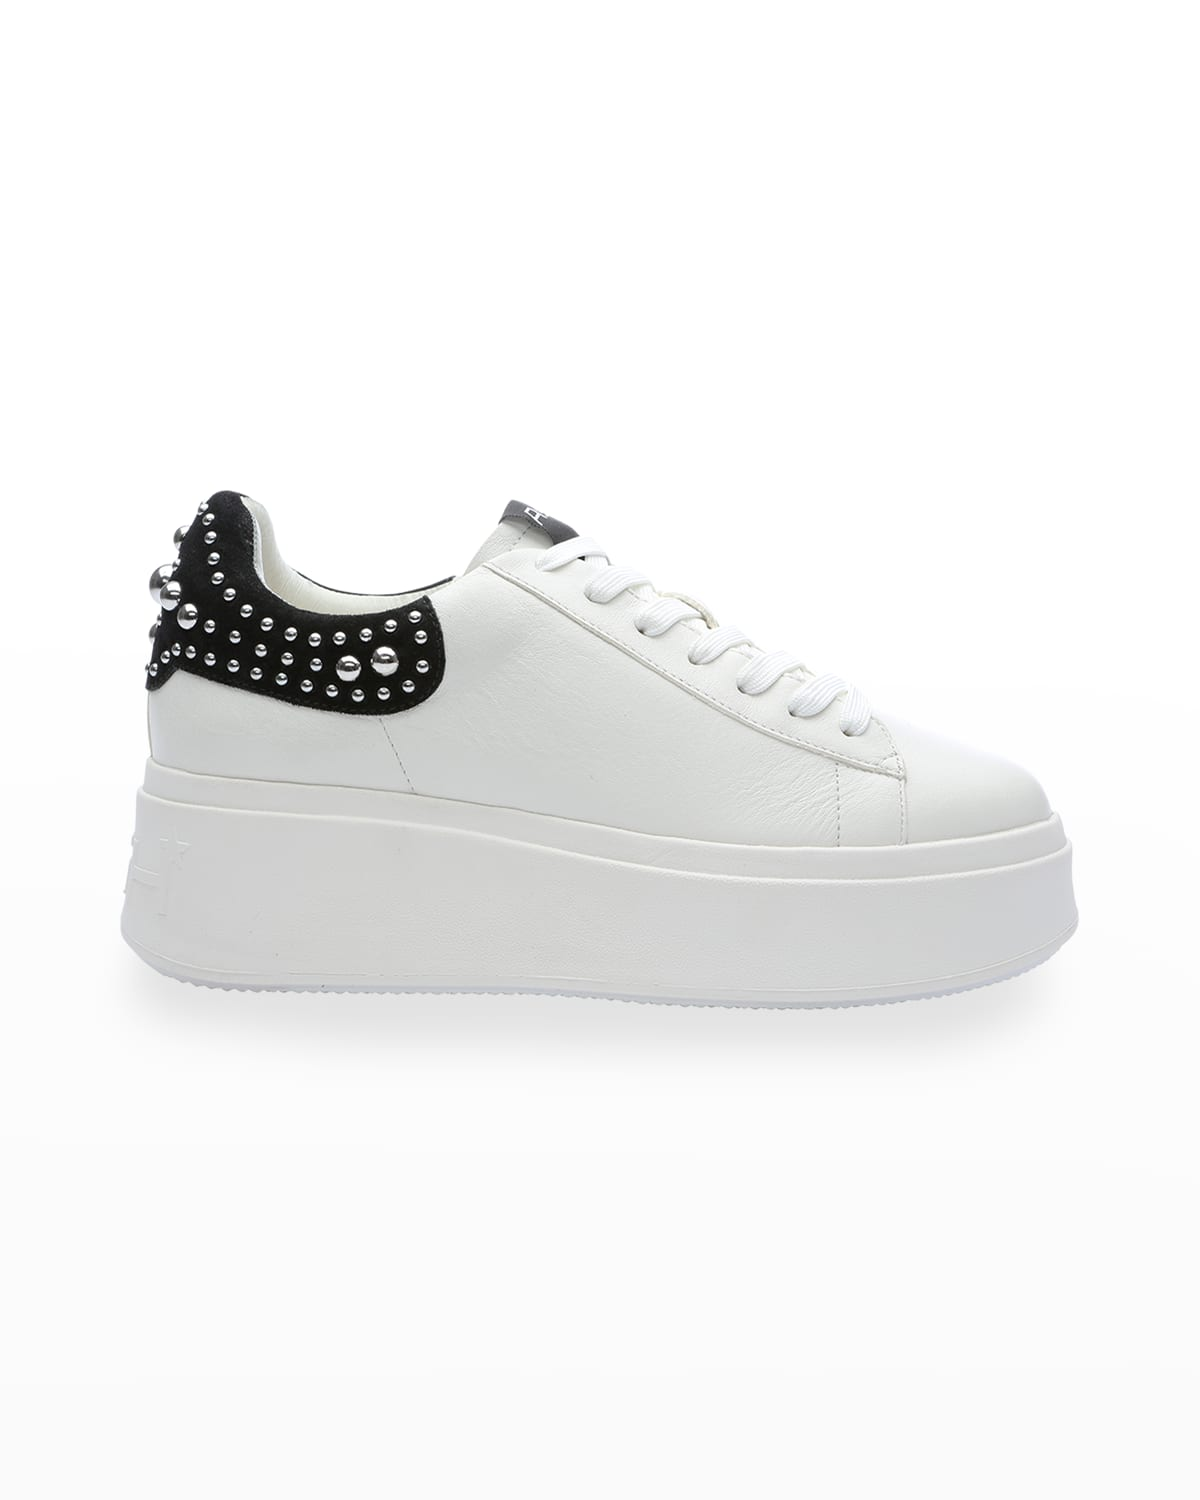 Moby Stud Bicolor Leather Platform Sneakers